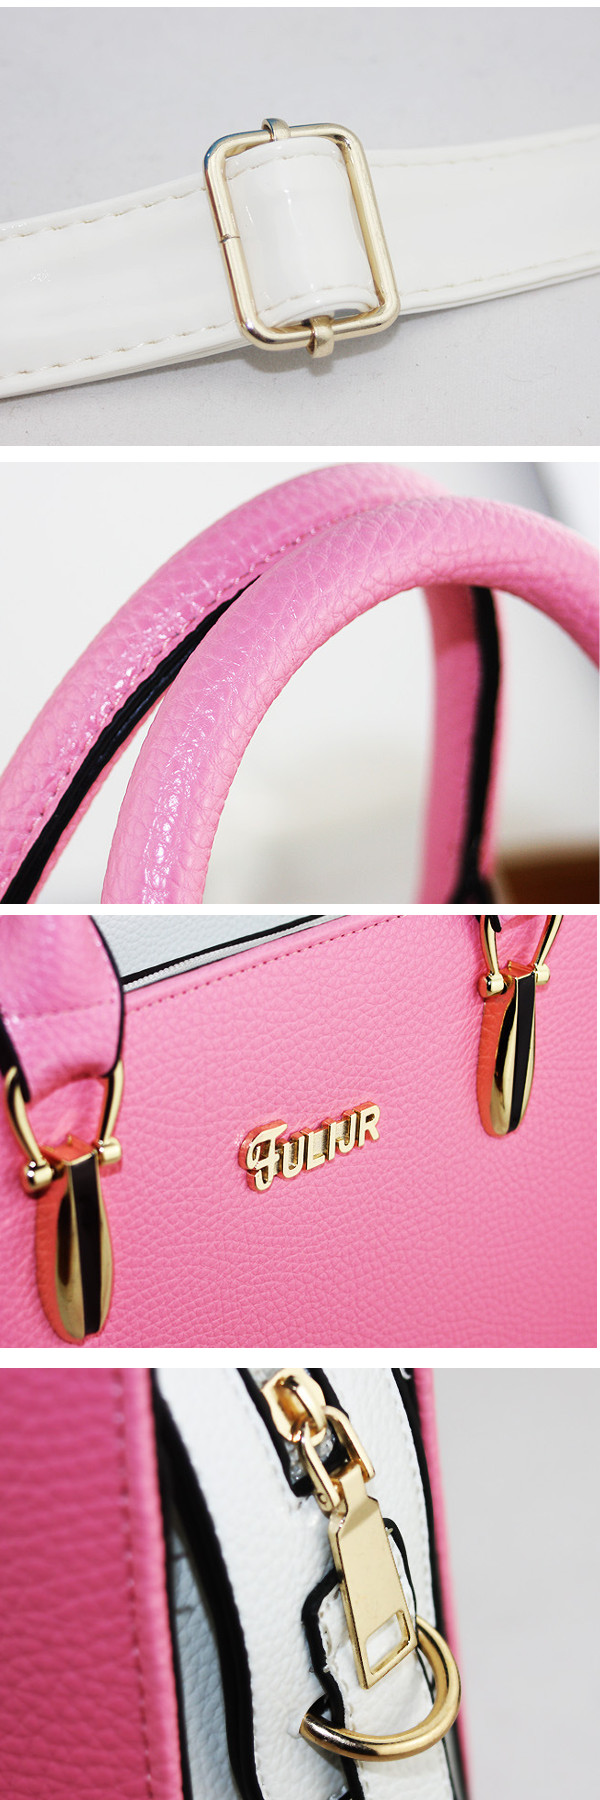 Women PU Leather Candy Color Tote Bags Casual Shoulder Bags Crossbody Bags